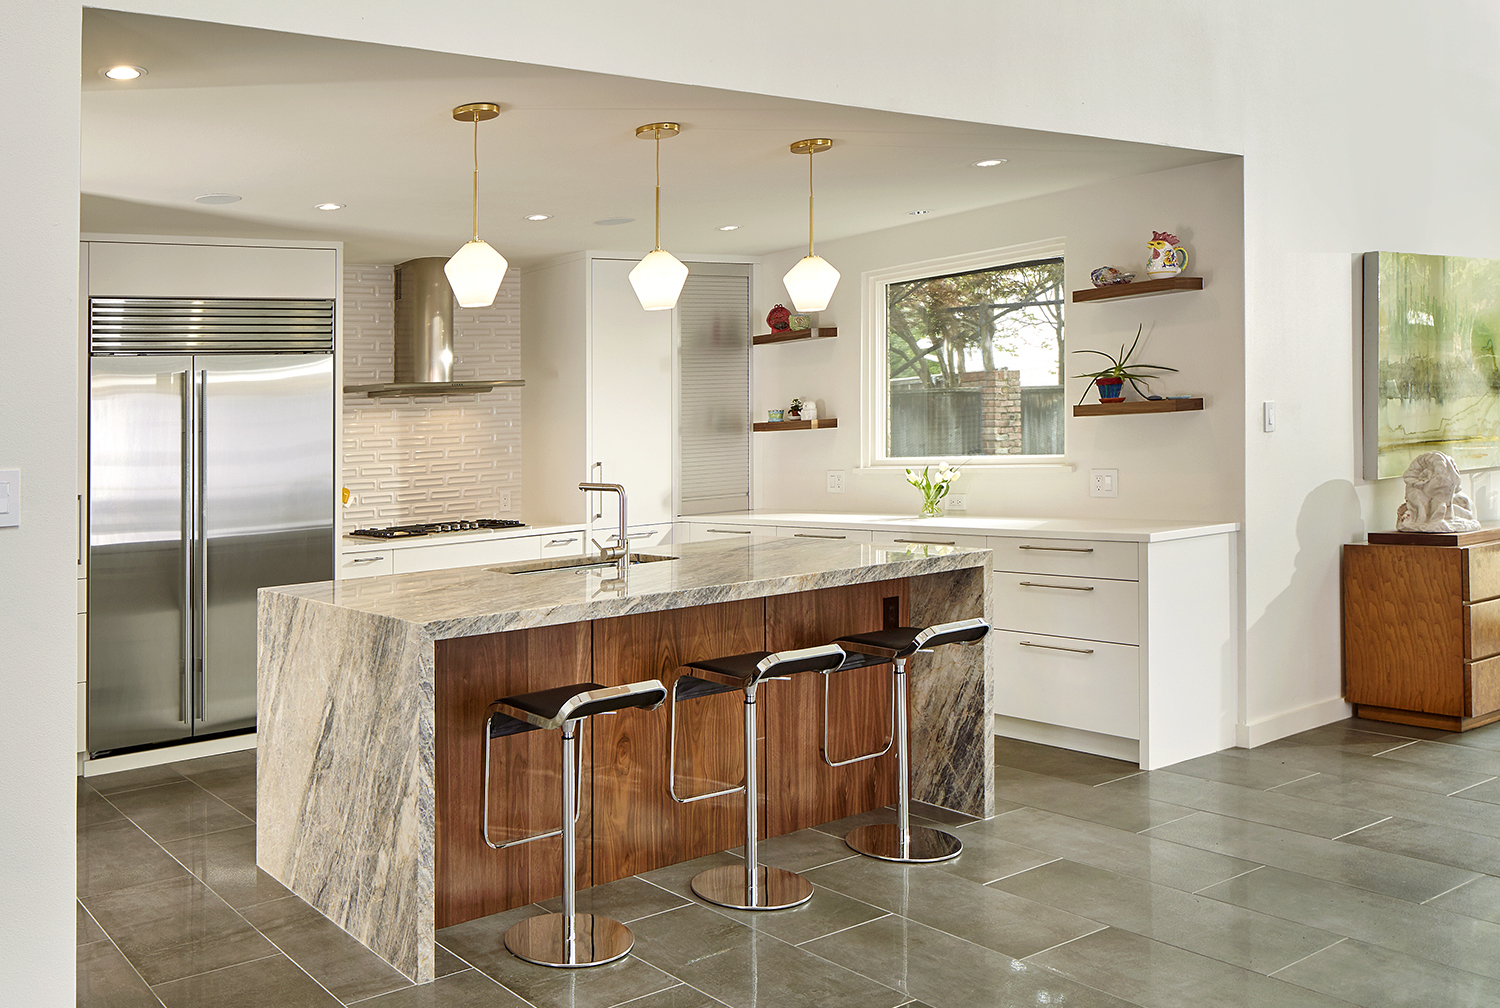 Maintaining Mid-Century Modern Vibes in Complete Remodel ... on Kitchen Remodel Modern  id=88214